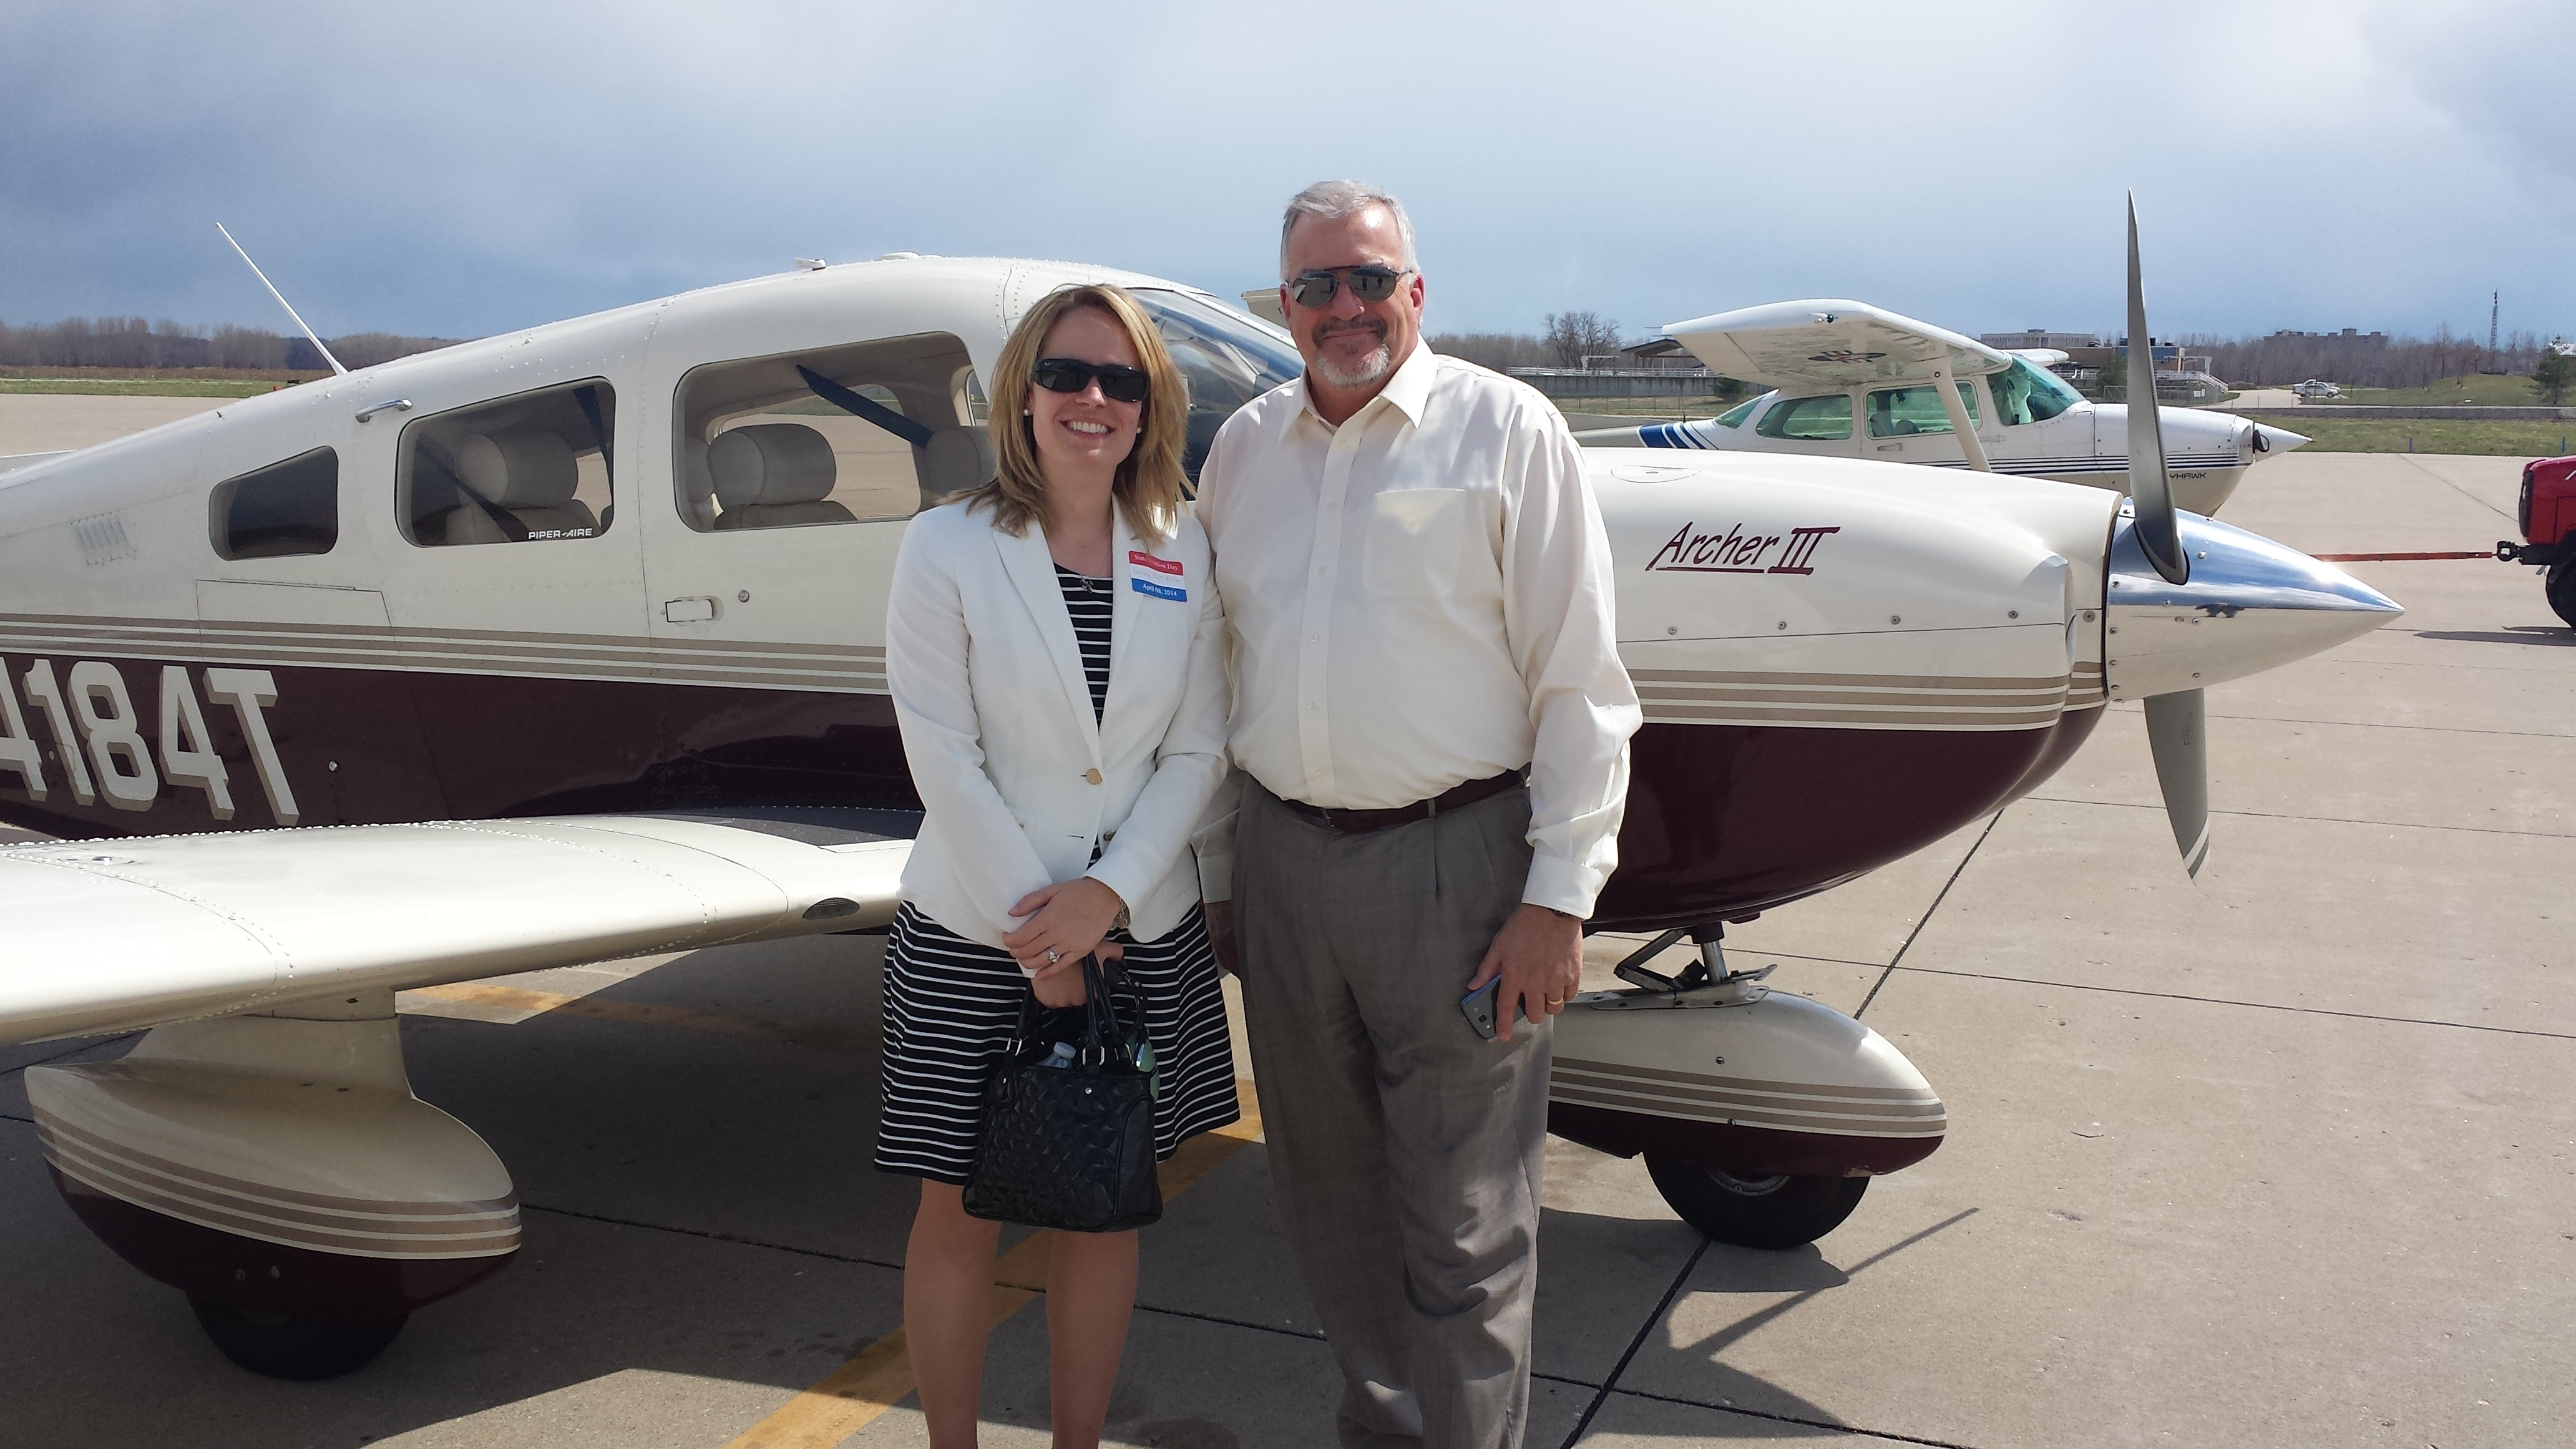 AOPA Central Southwest Regional Manager Yasmina Platt and Missouri State Rep. Doug Funderburk.